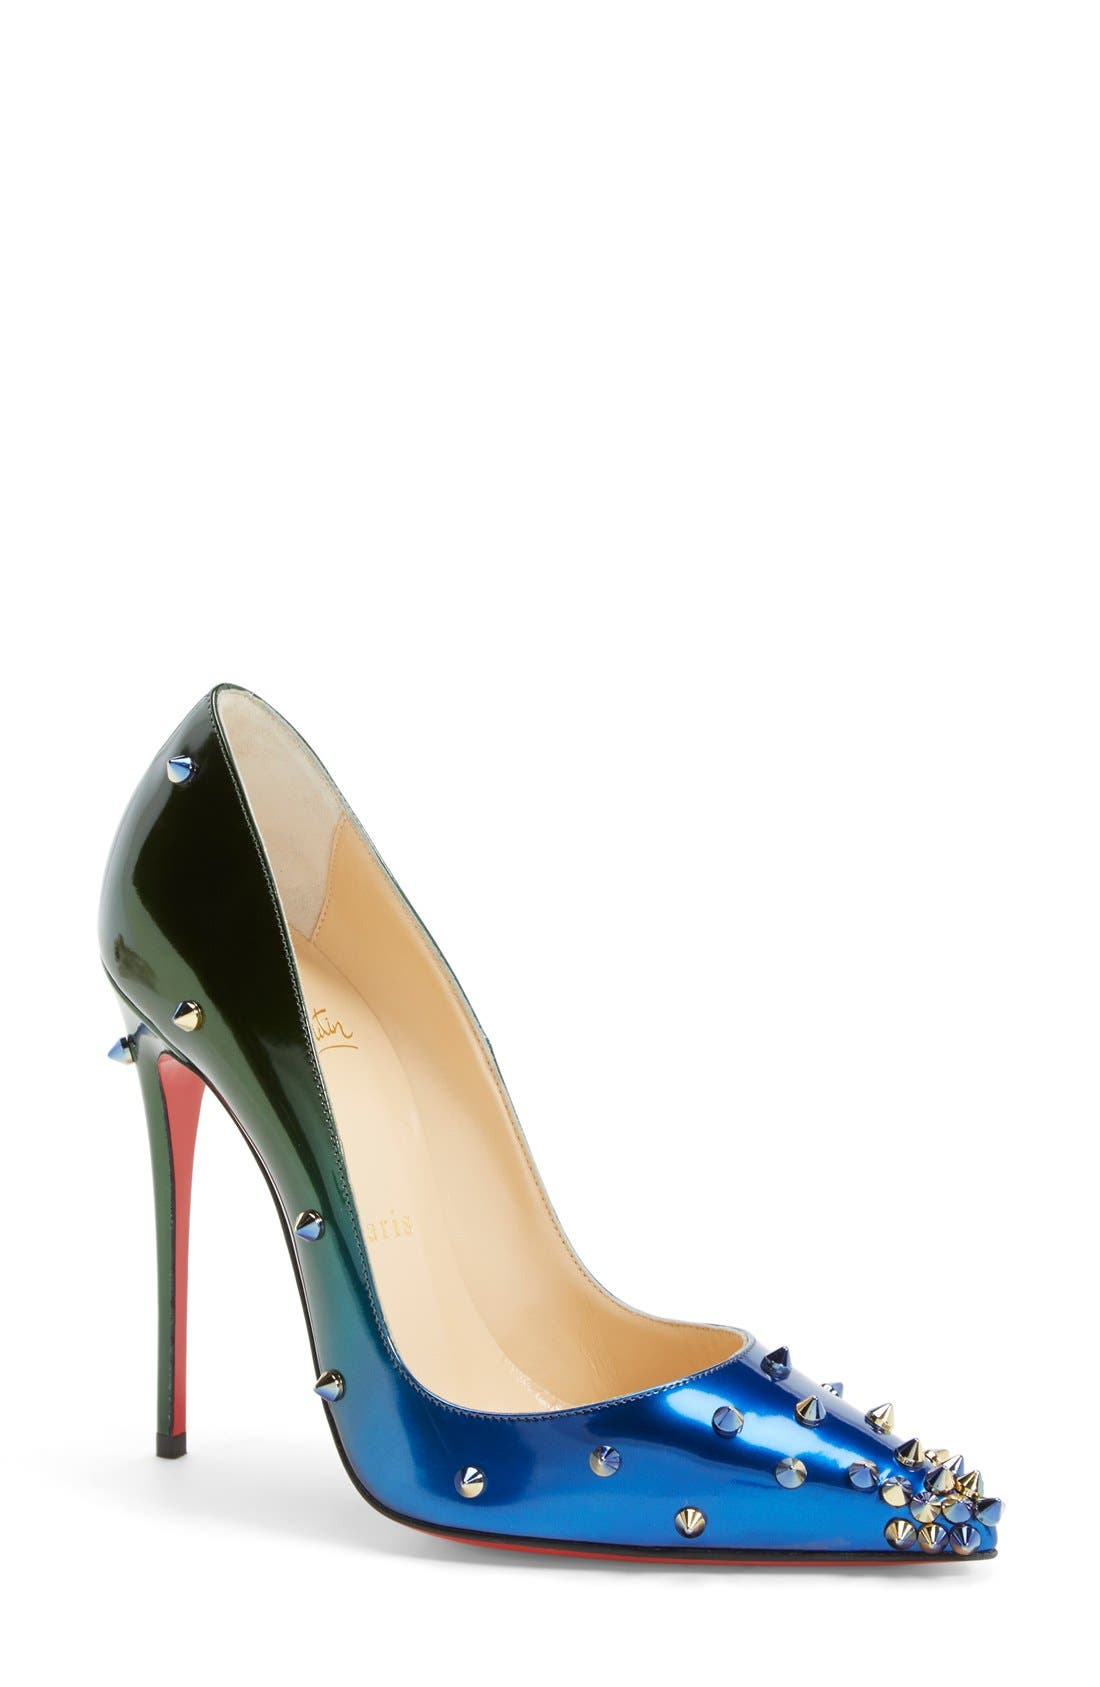 Alternate Image 1 Selected - Christian Louboutin 'Degraspike' Pointy Toe Pump